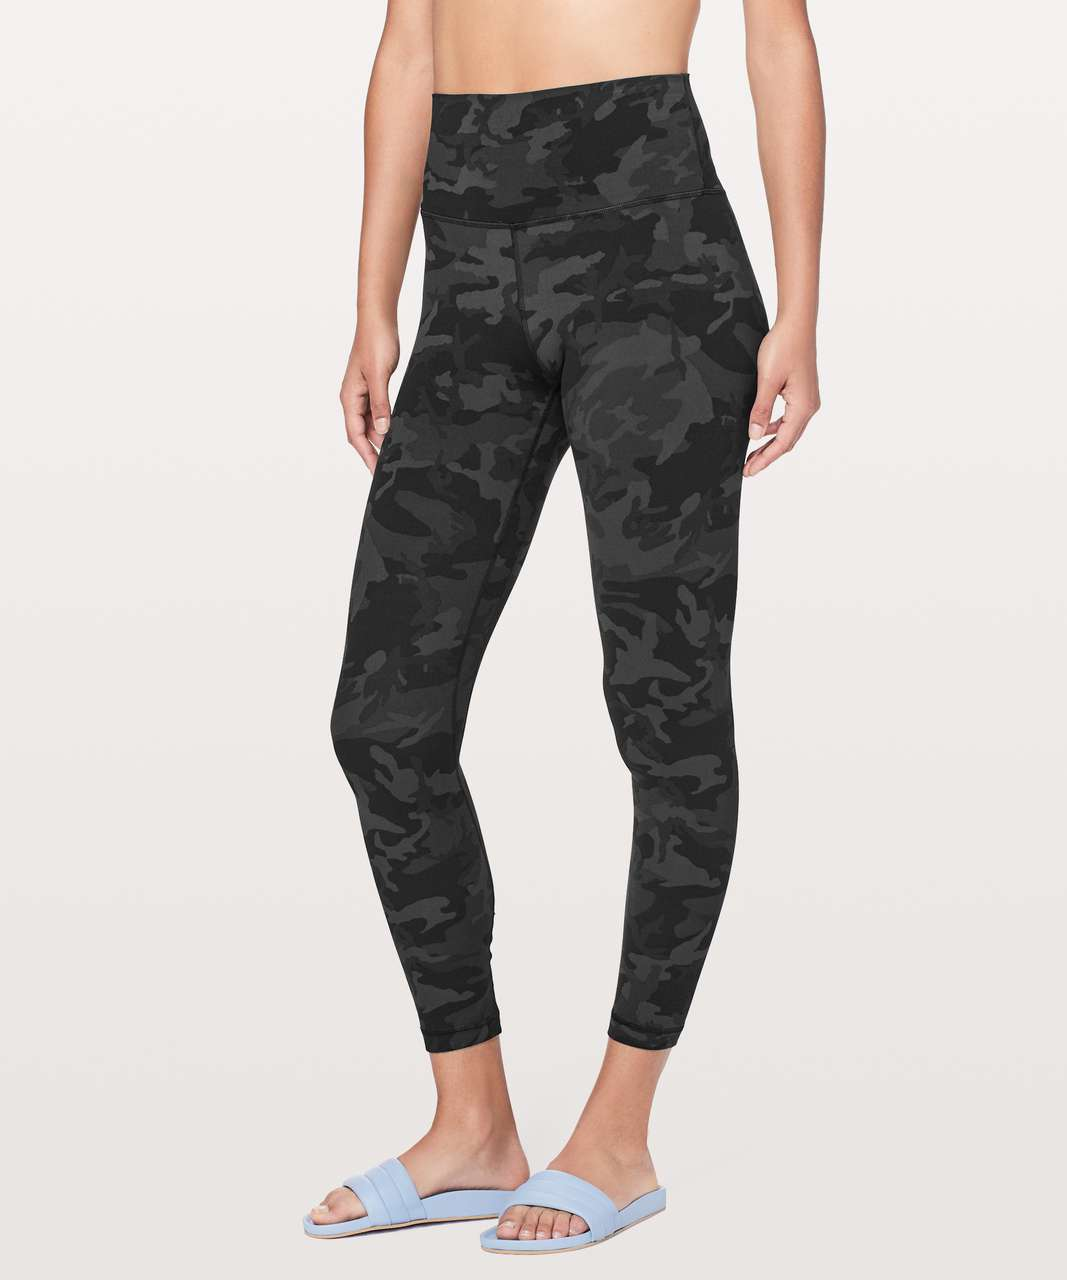 "Lululemon Align Pant II *25"" - Incognito Camo Multi Grey (First Release)"